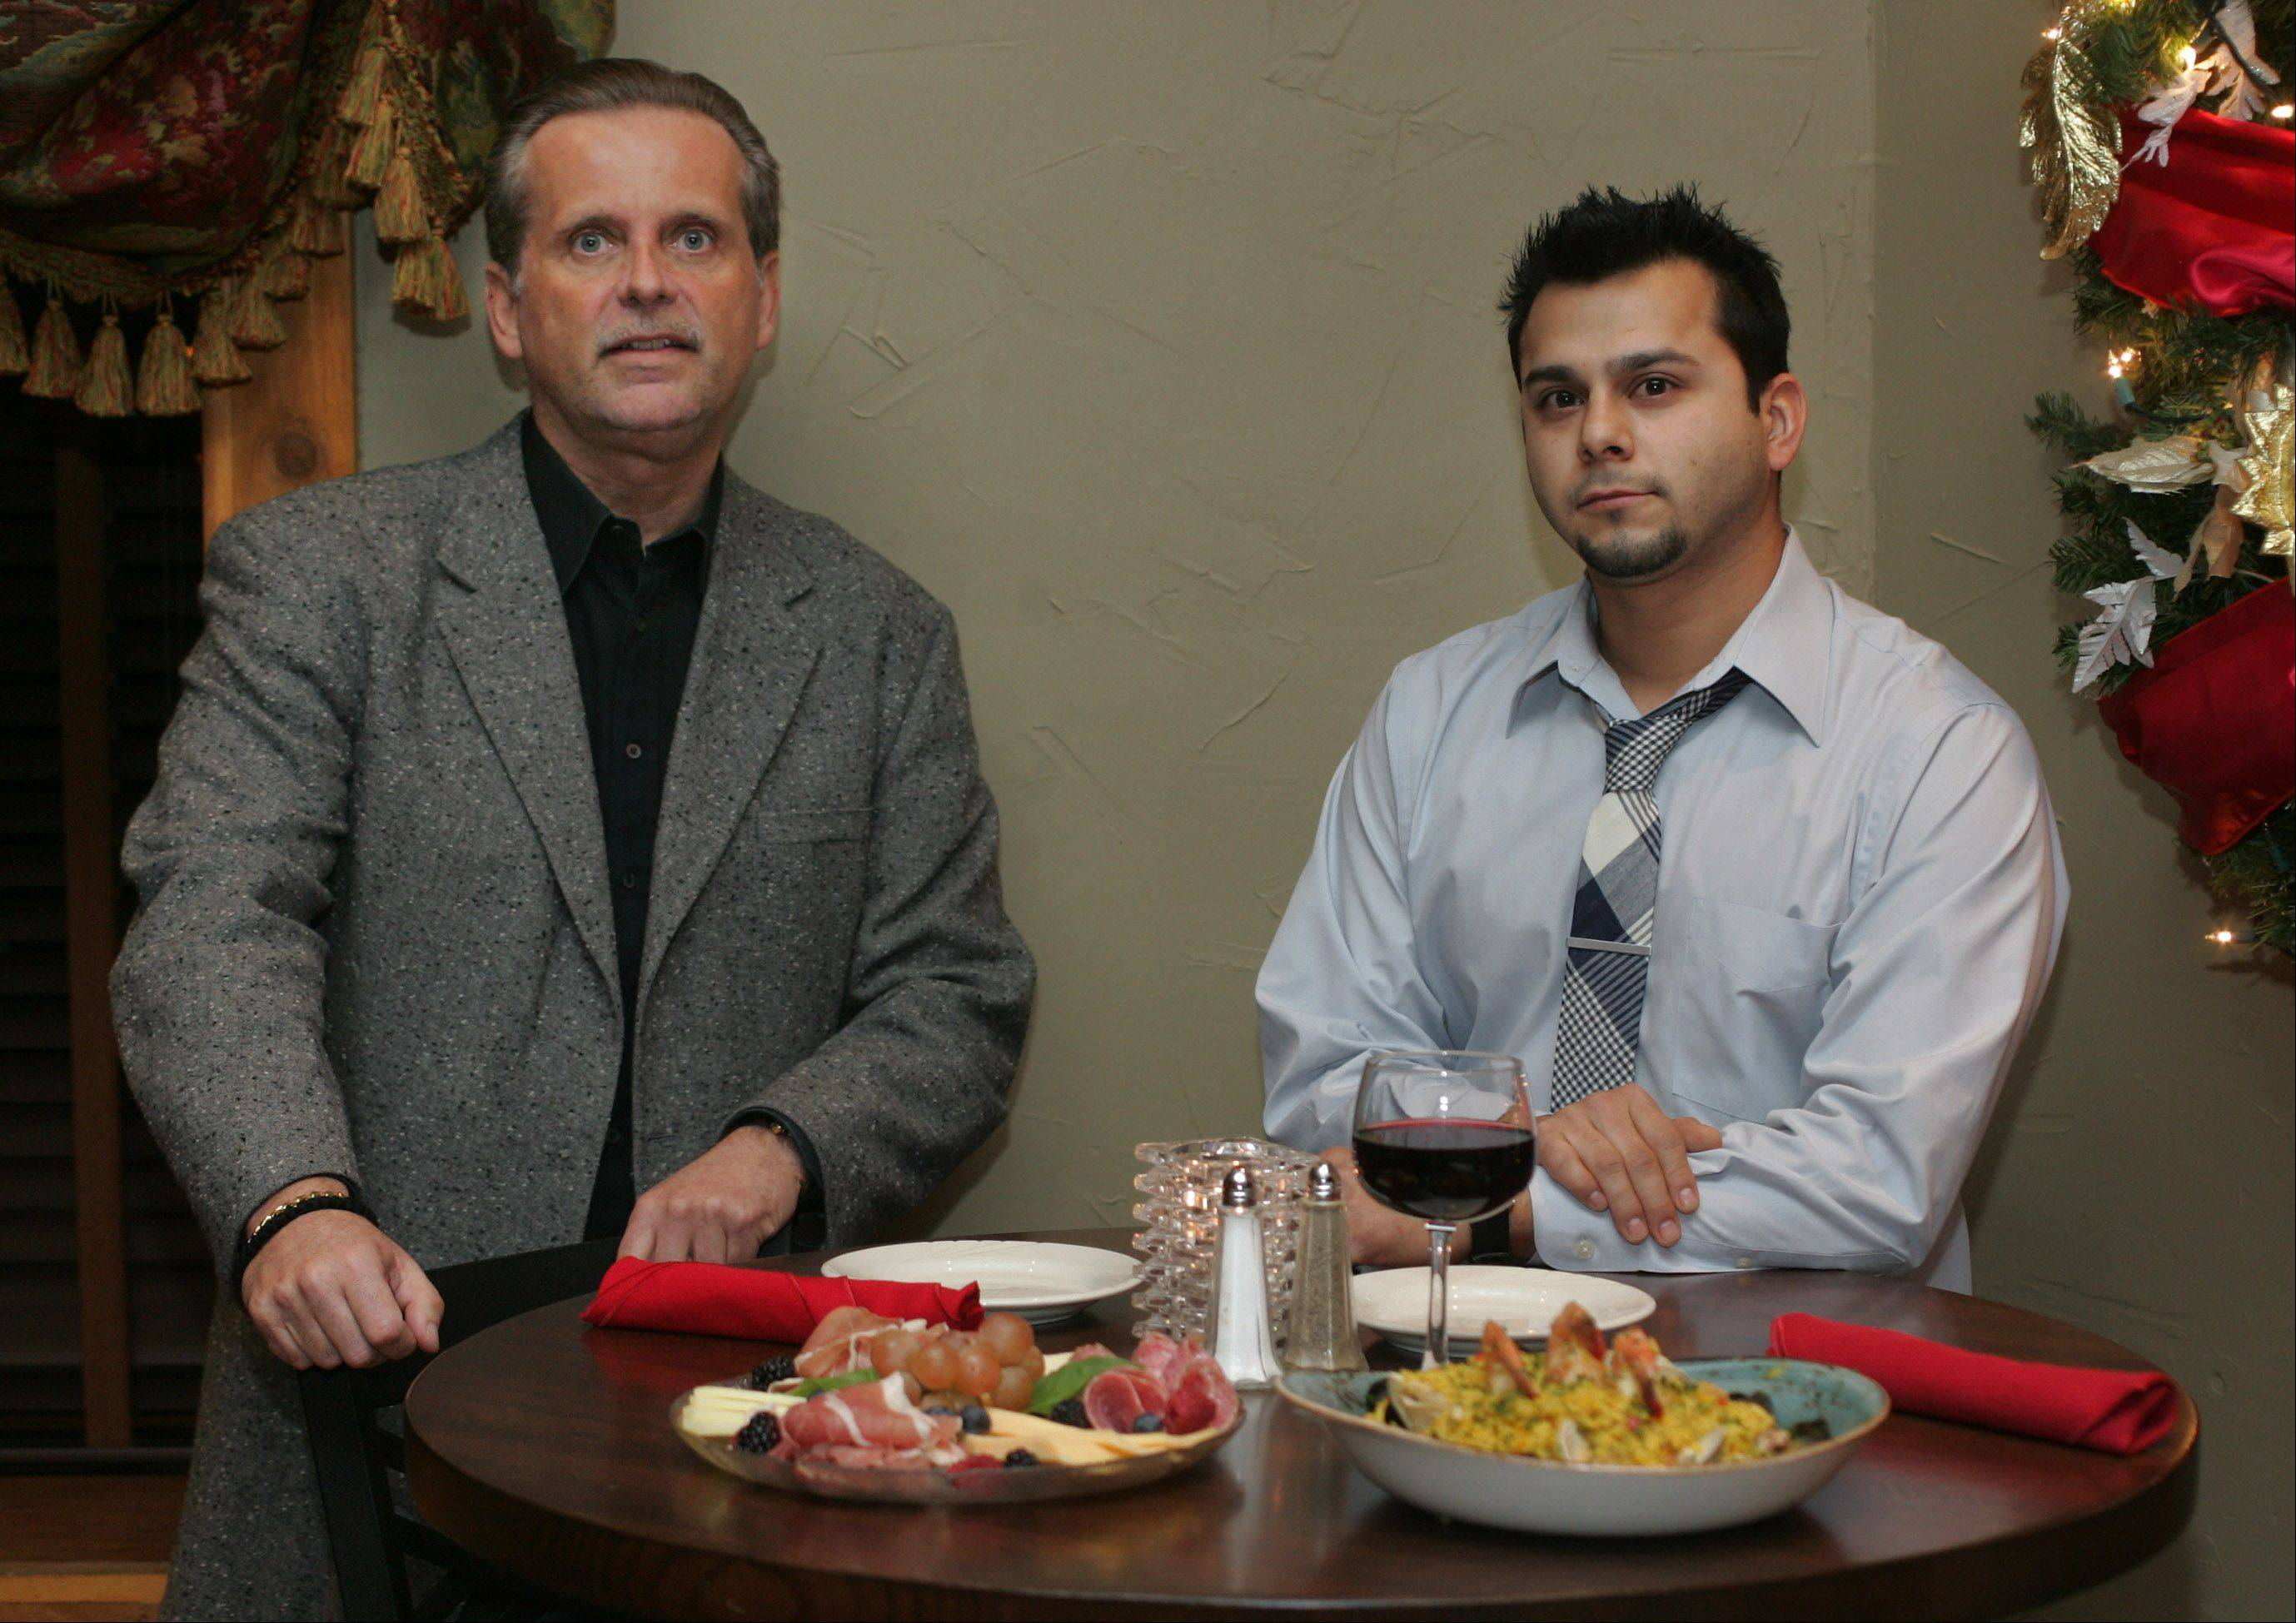 Owner Gus Govas and manager Ruben Estrada oversee the new Bodega Grill & Wine Lounge in Gurnee.